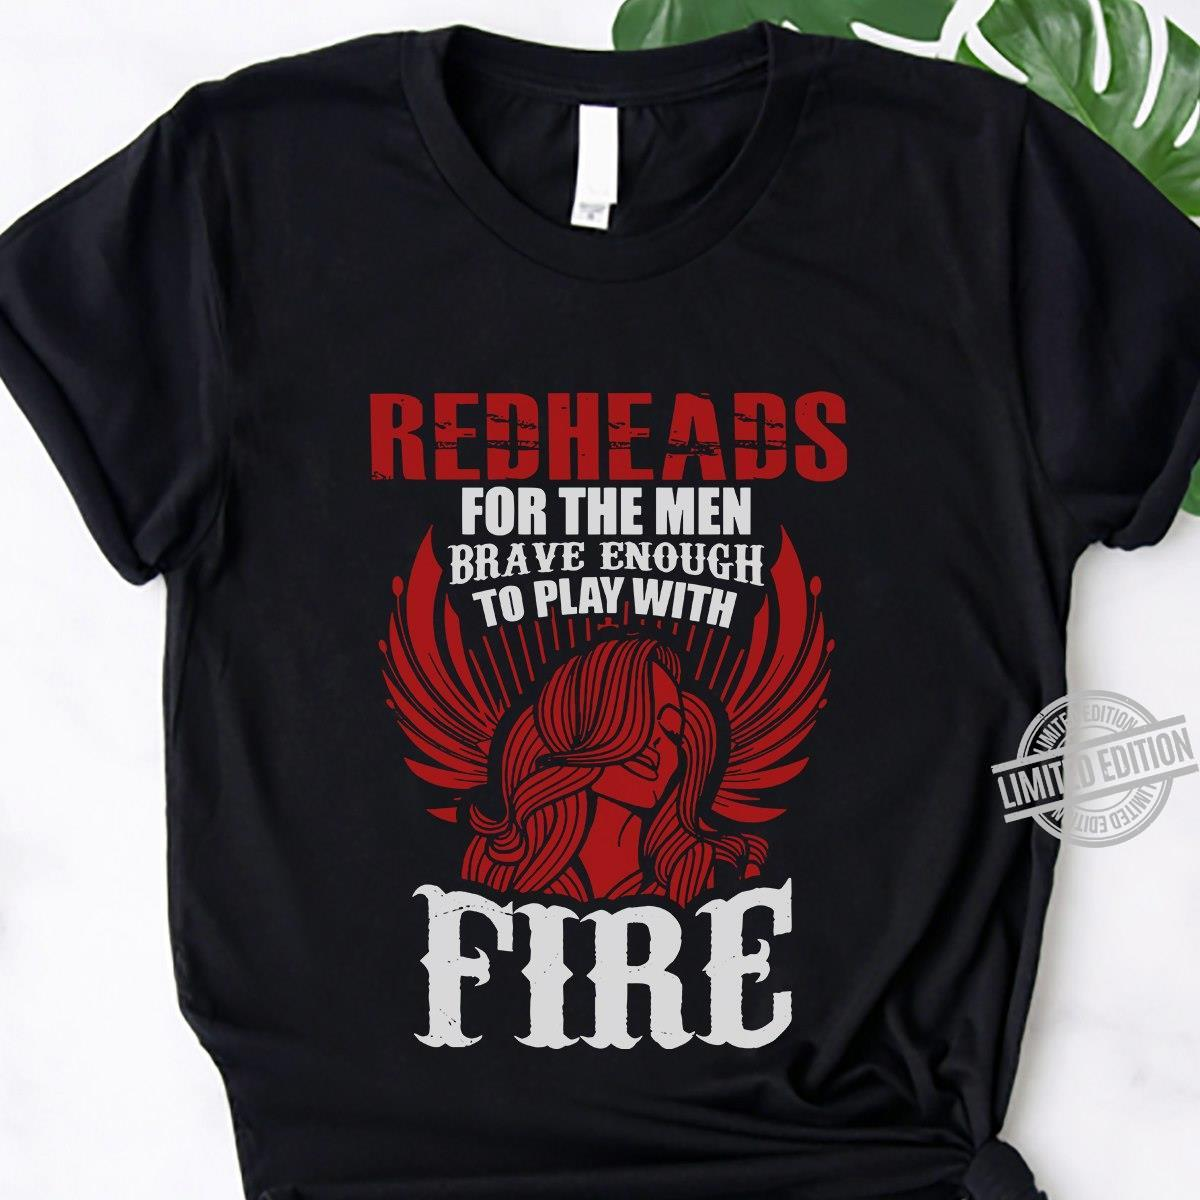 Redheads For The Men Brave Enough To Play With Fire Shirt